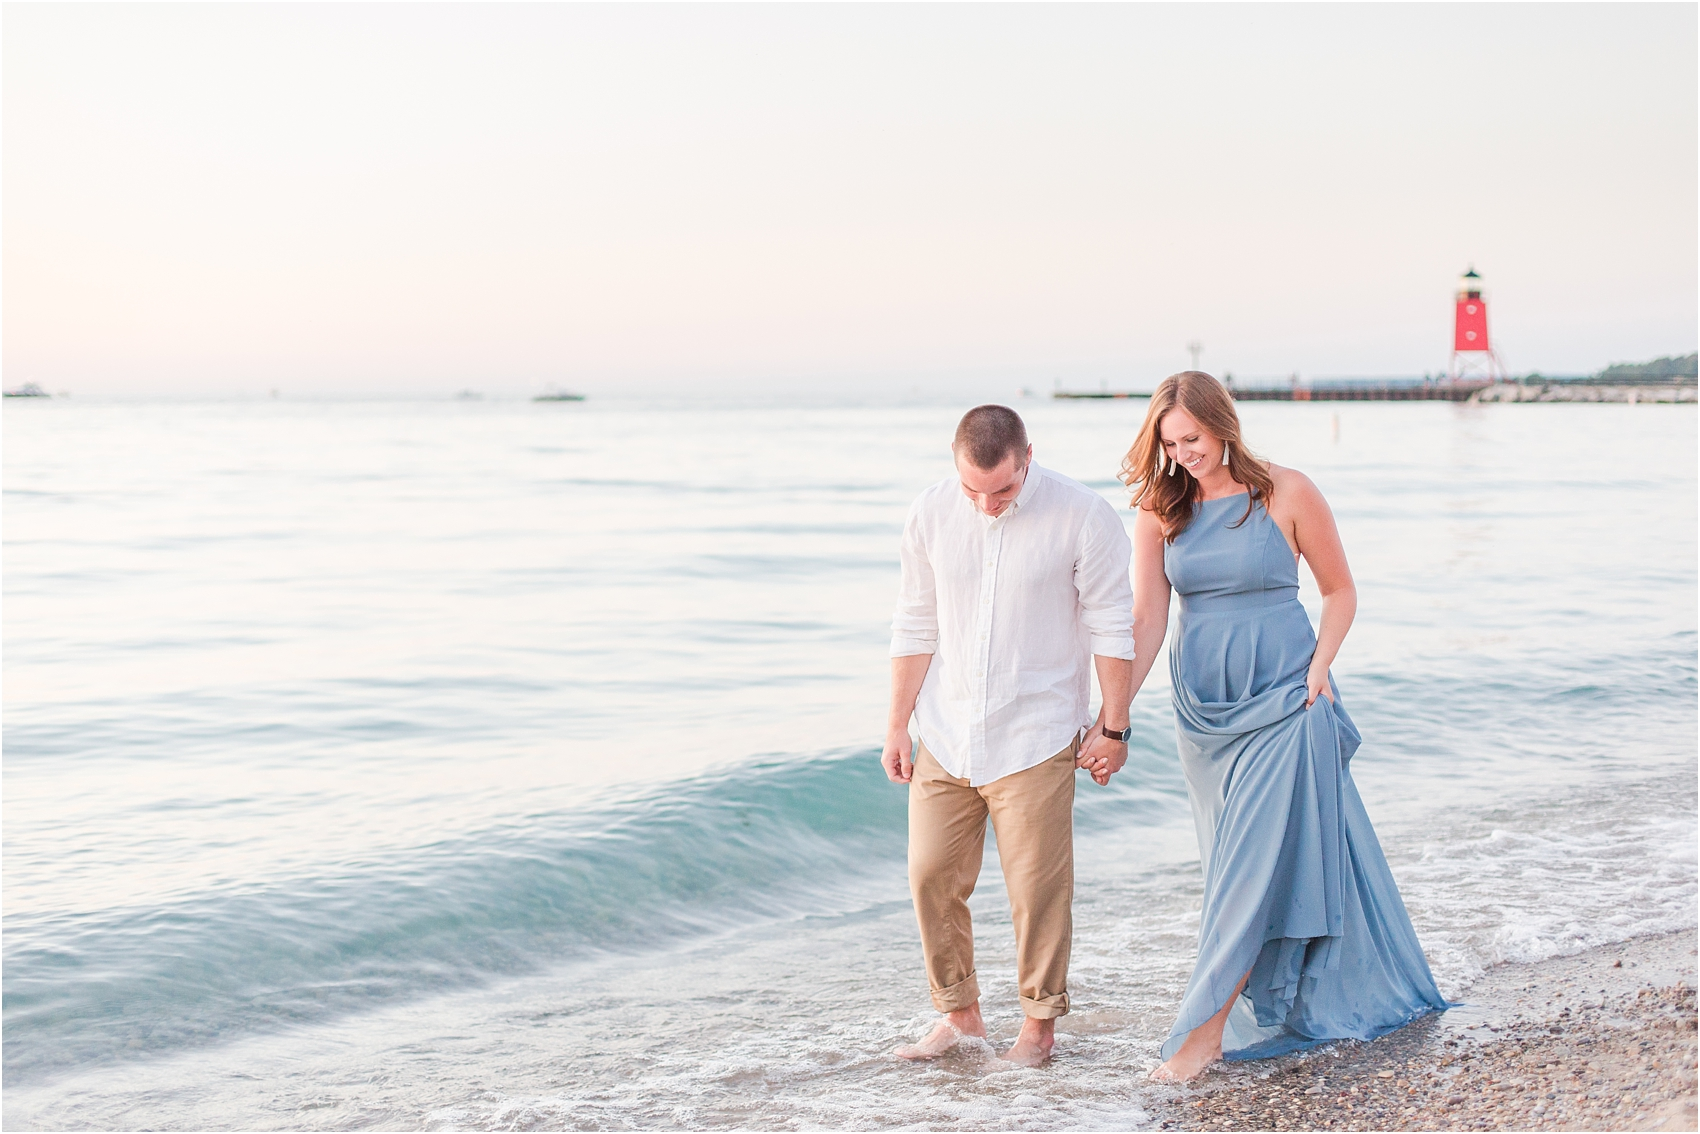 emotional-candid-romantic-engagement-photos-in-detroit-chicago-northern-michigan-by-courtney-carolyn-photography_0040.jpg